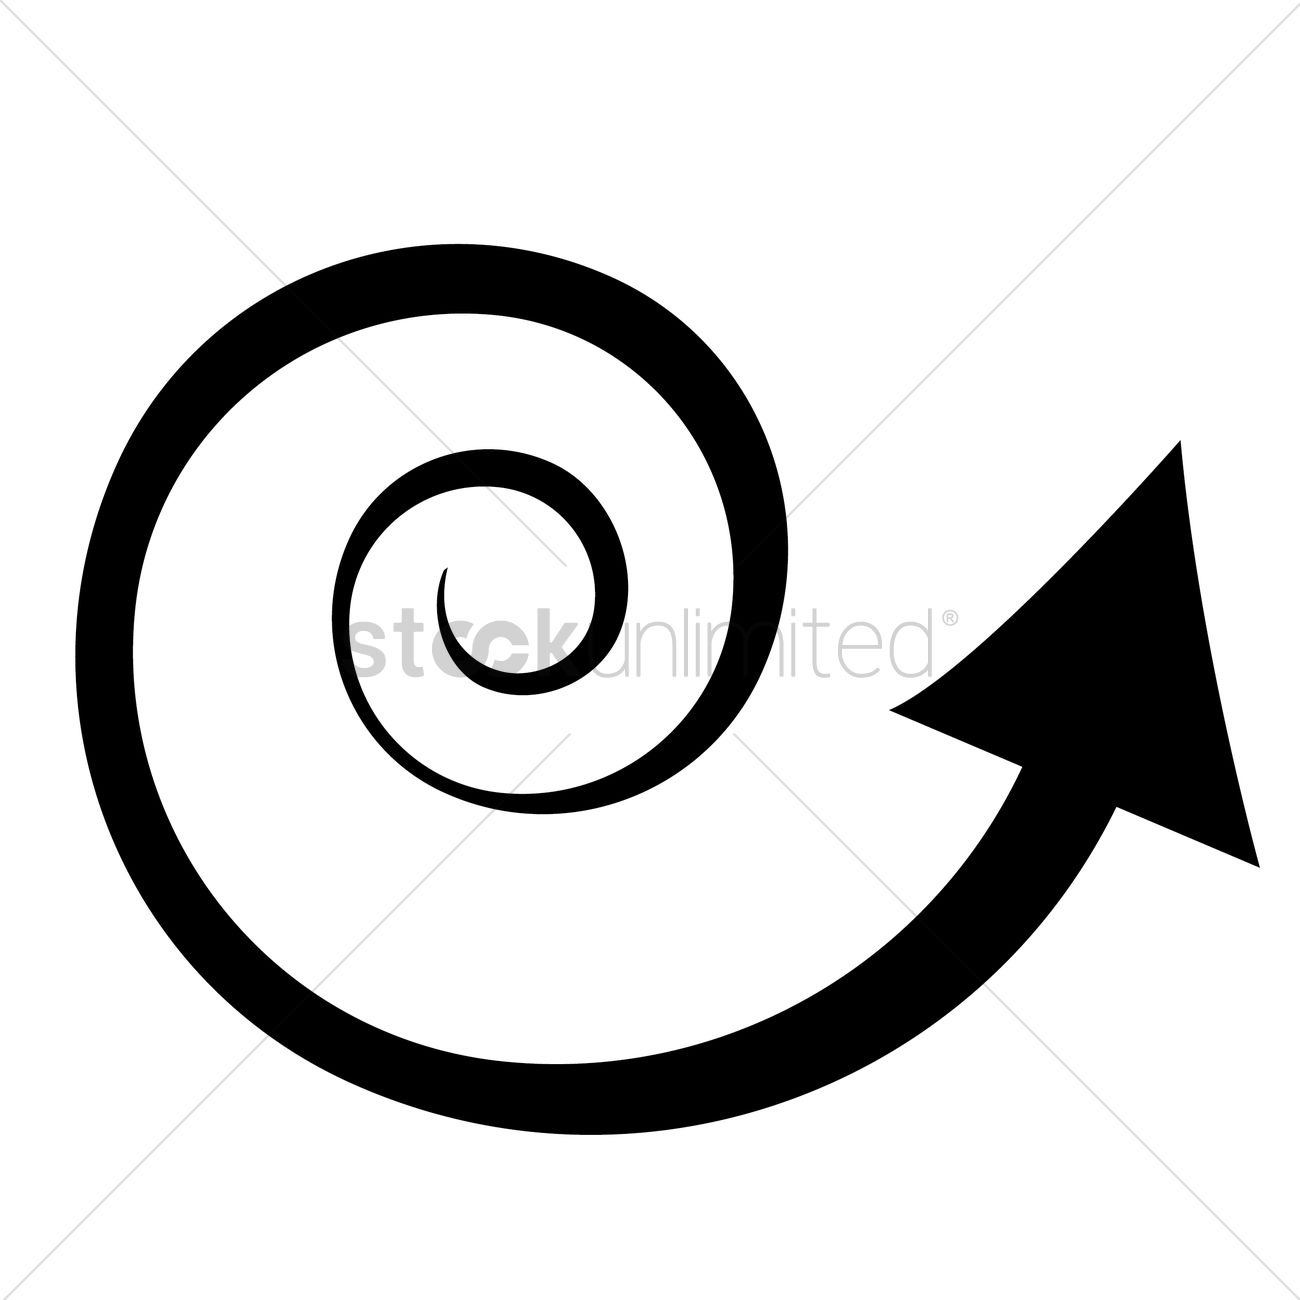 Spiral arrow Vector Image - 1378722 | StockUnlimited